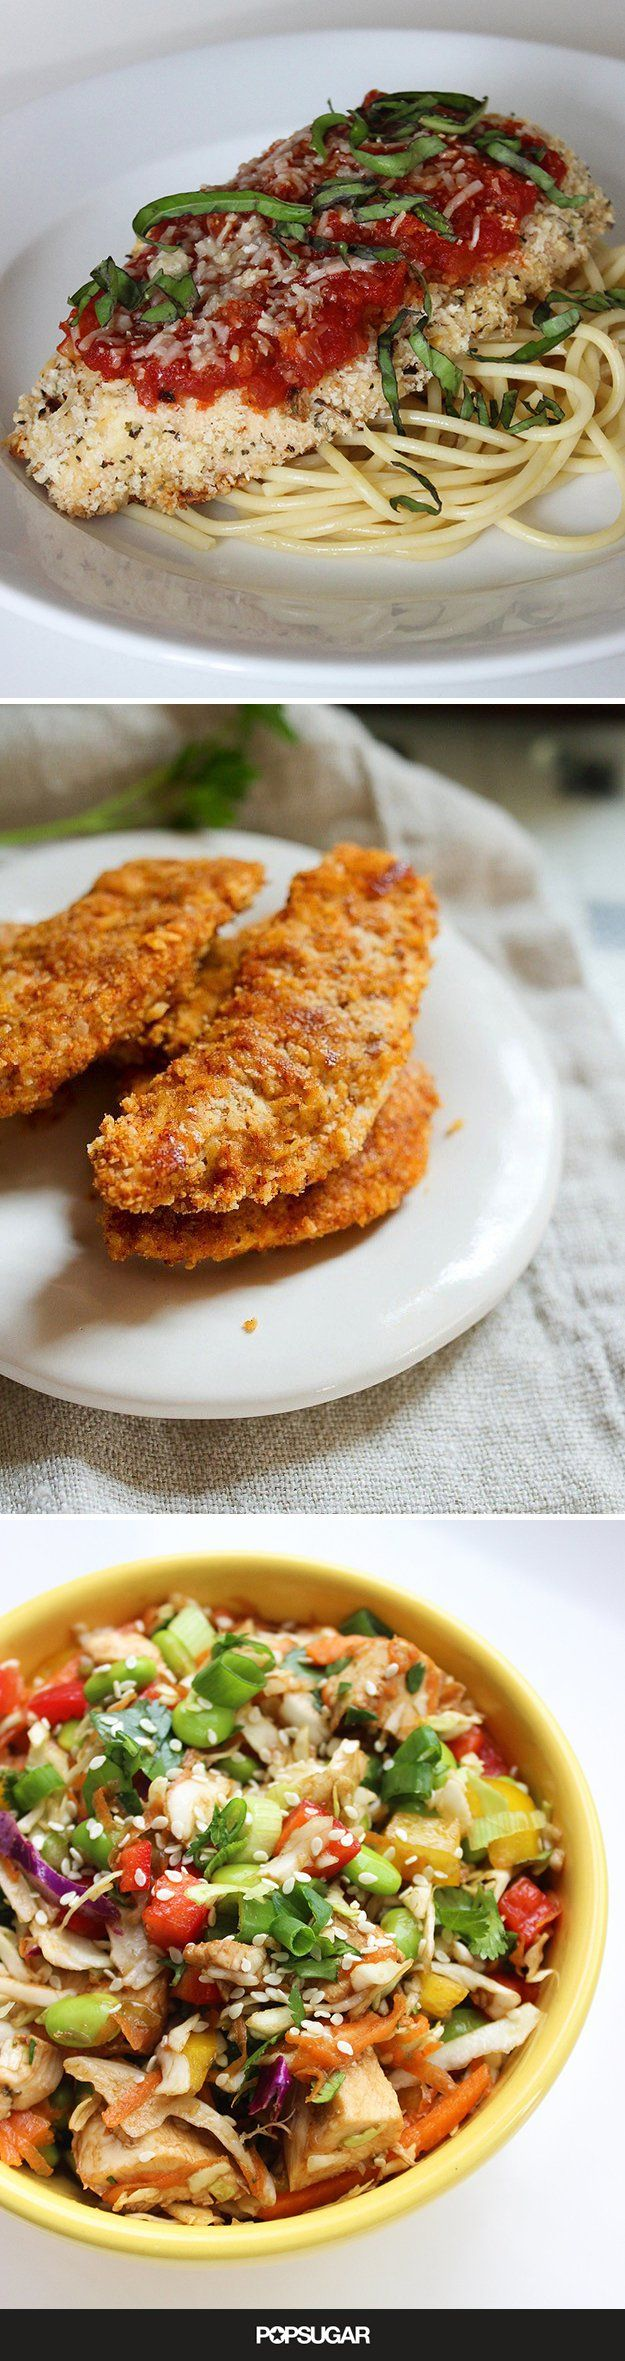 Pin for Later: 12 Healthy Chicken Recipes to Help You Lose Weight